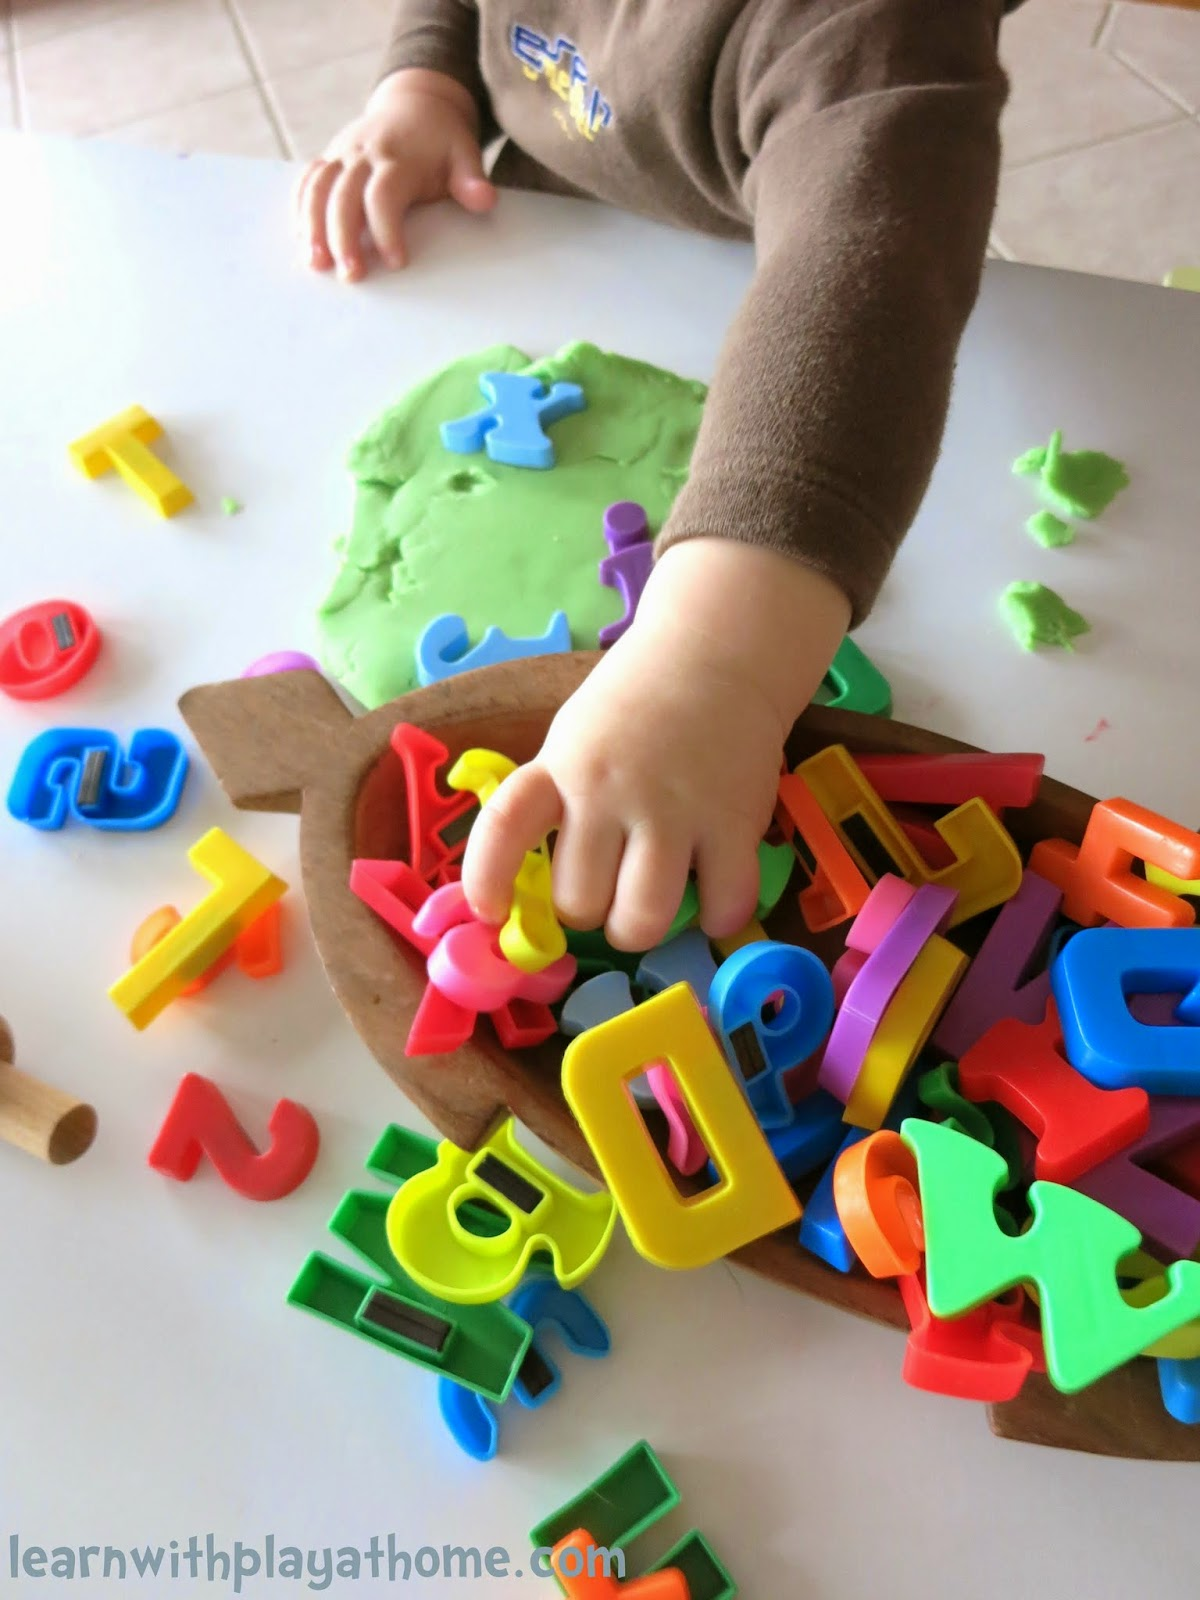 Learn with Play at Home Invitation to Play and Learn with